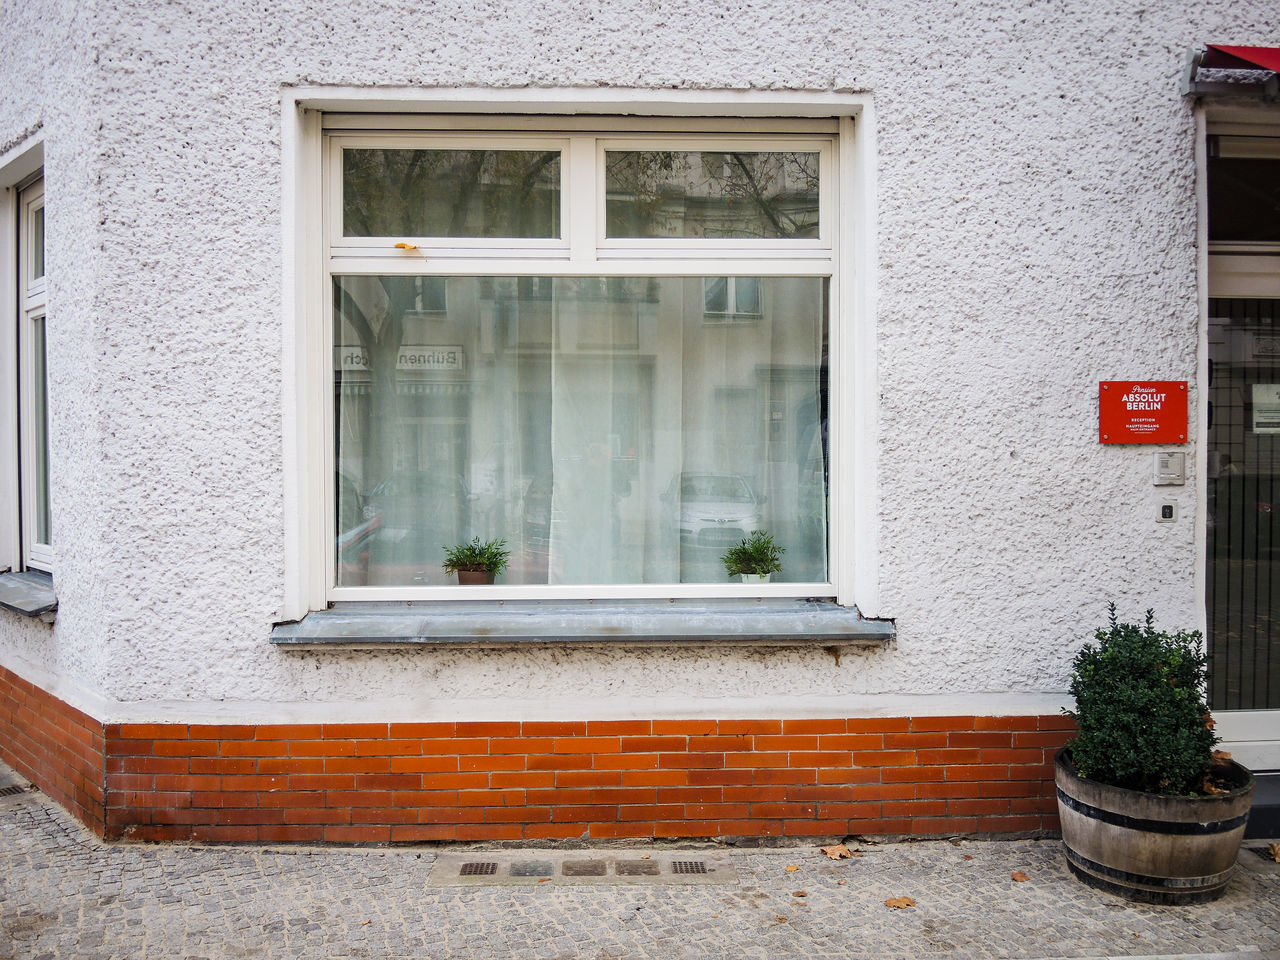 Beautiful stock photos of berliner mauer, window, building exterior, closed, built structure